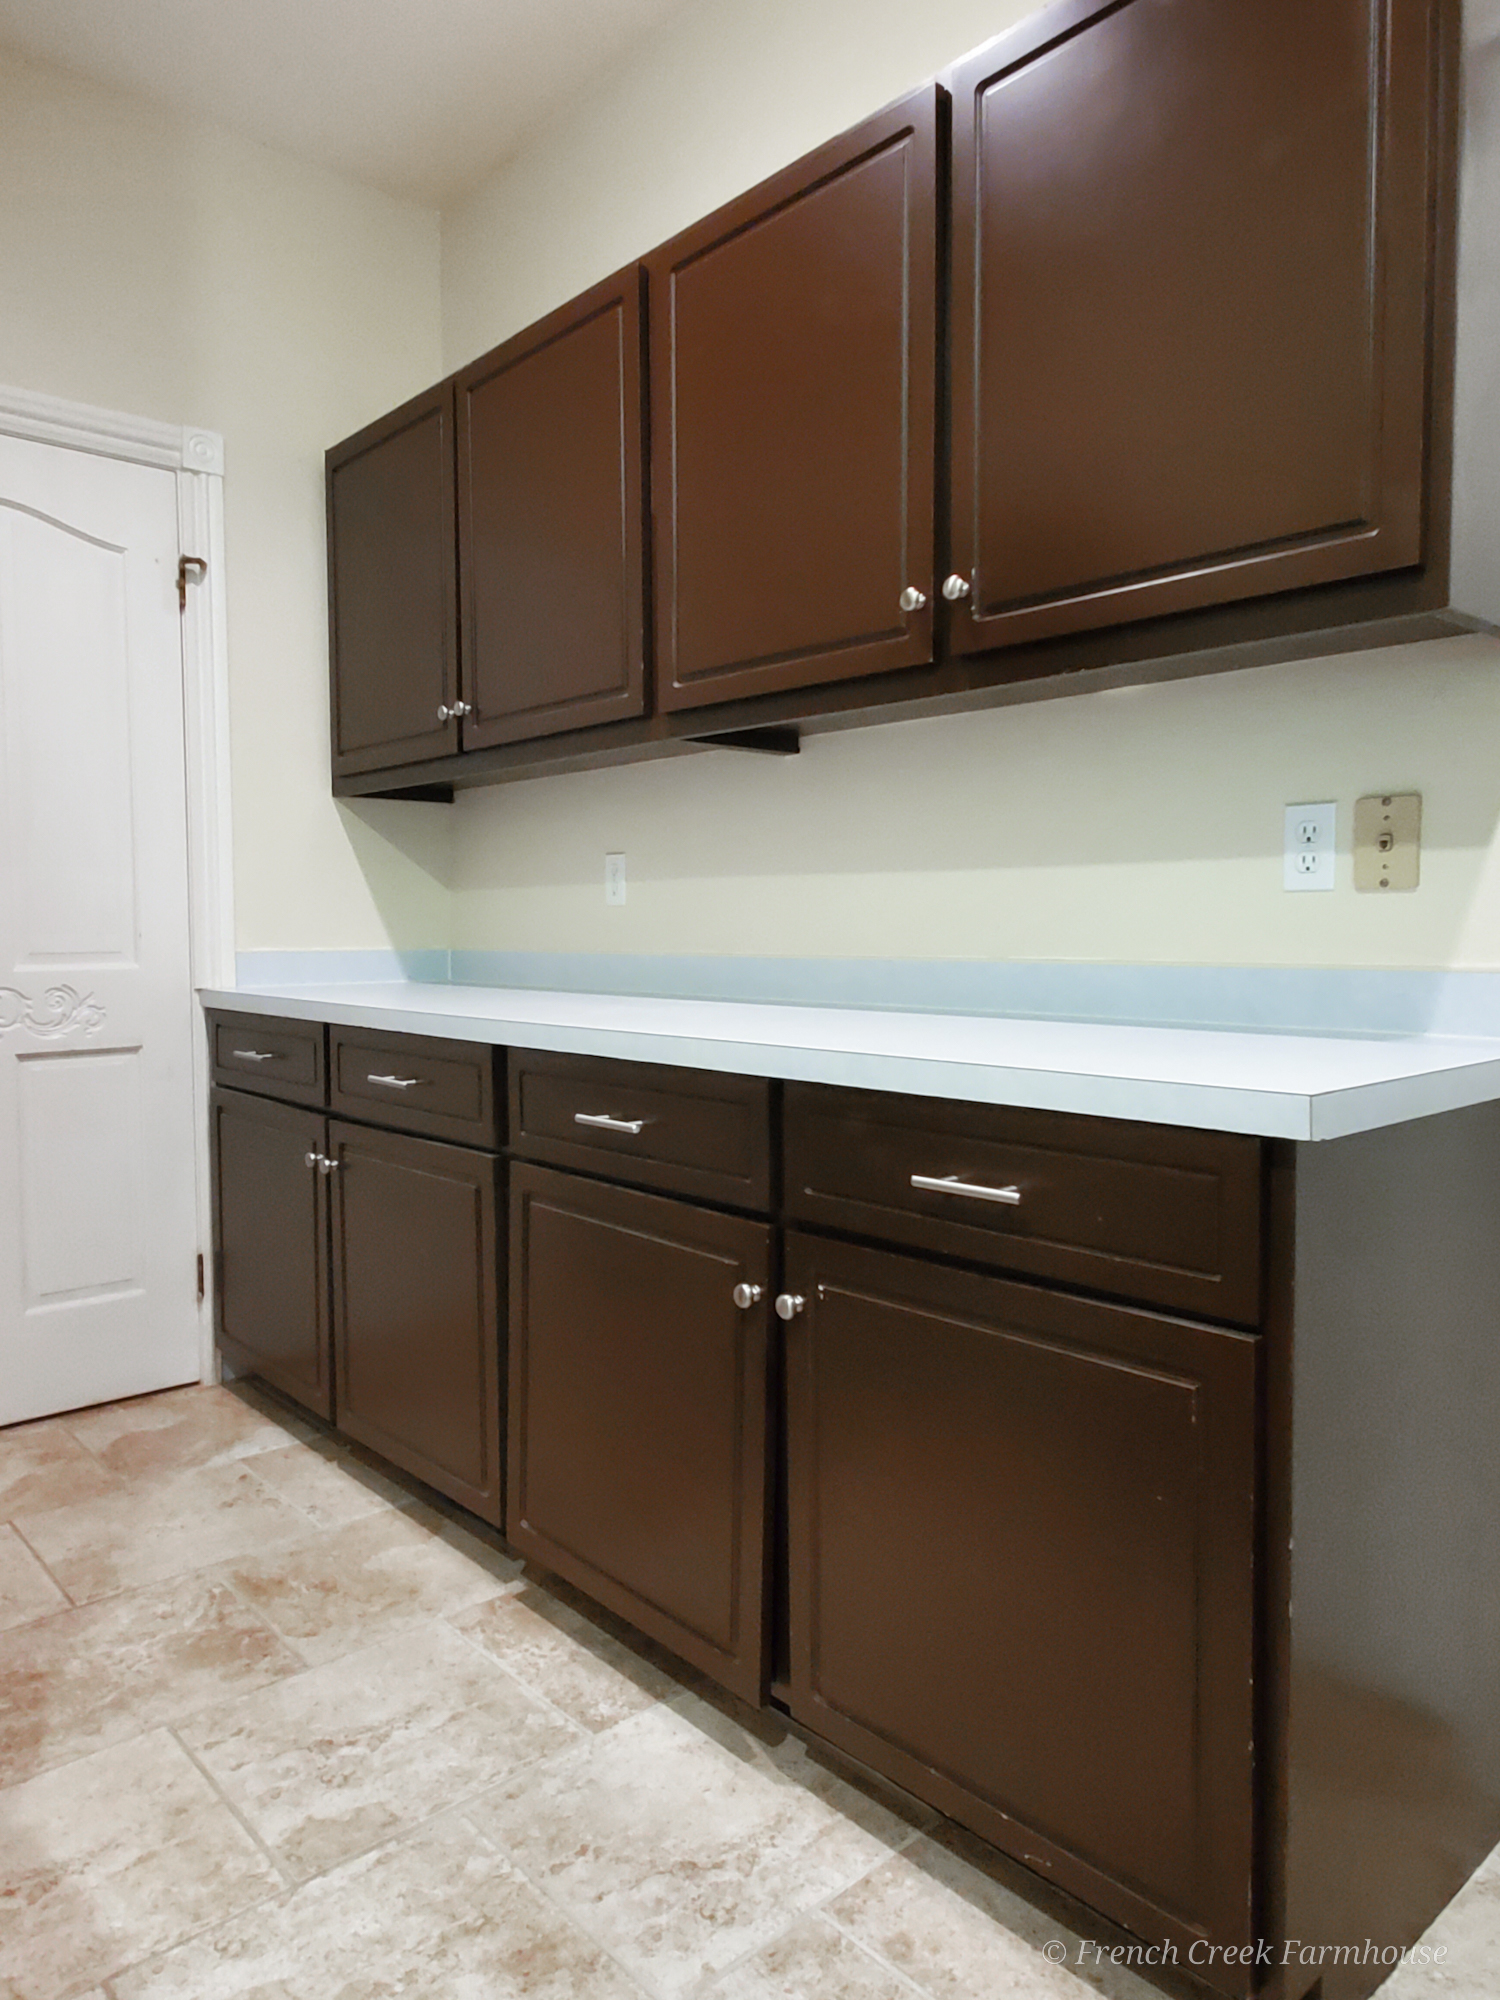 Before: Our plain brown cabinets and laminate countertops